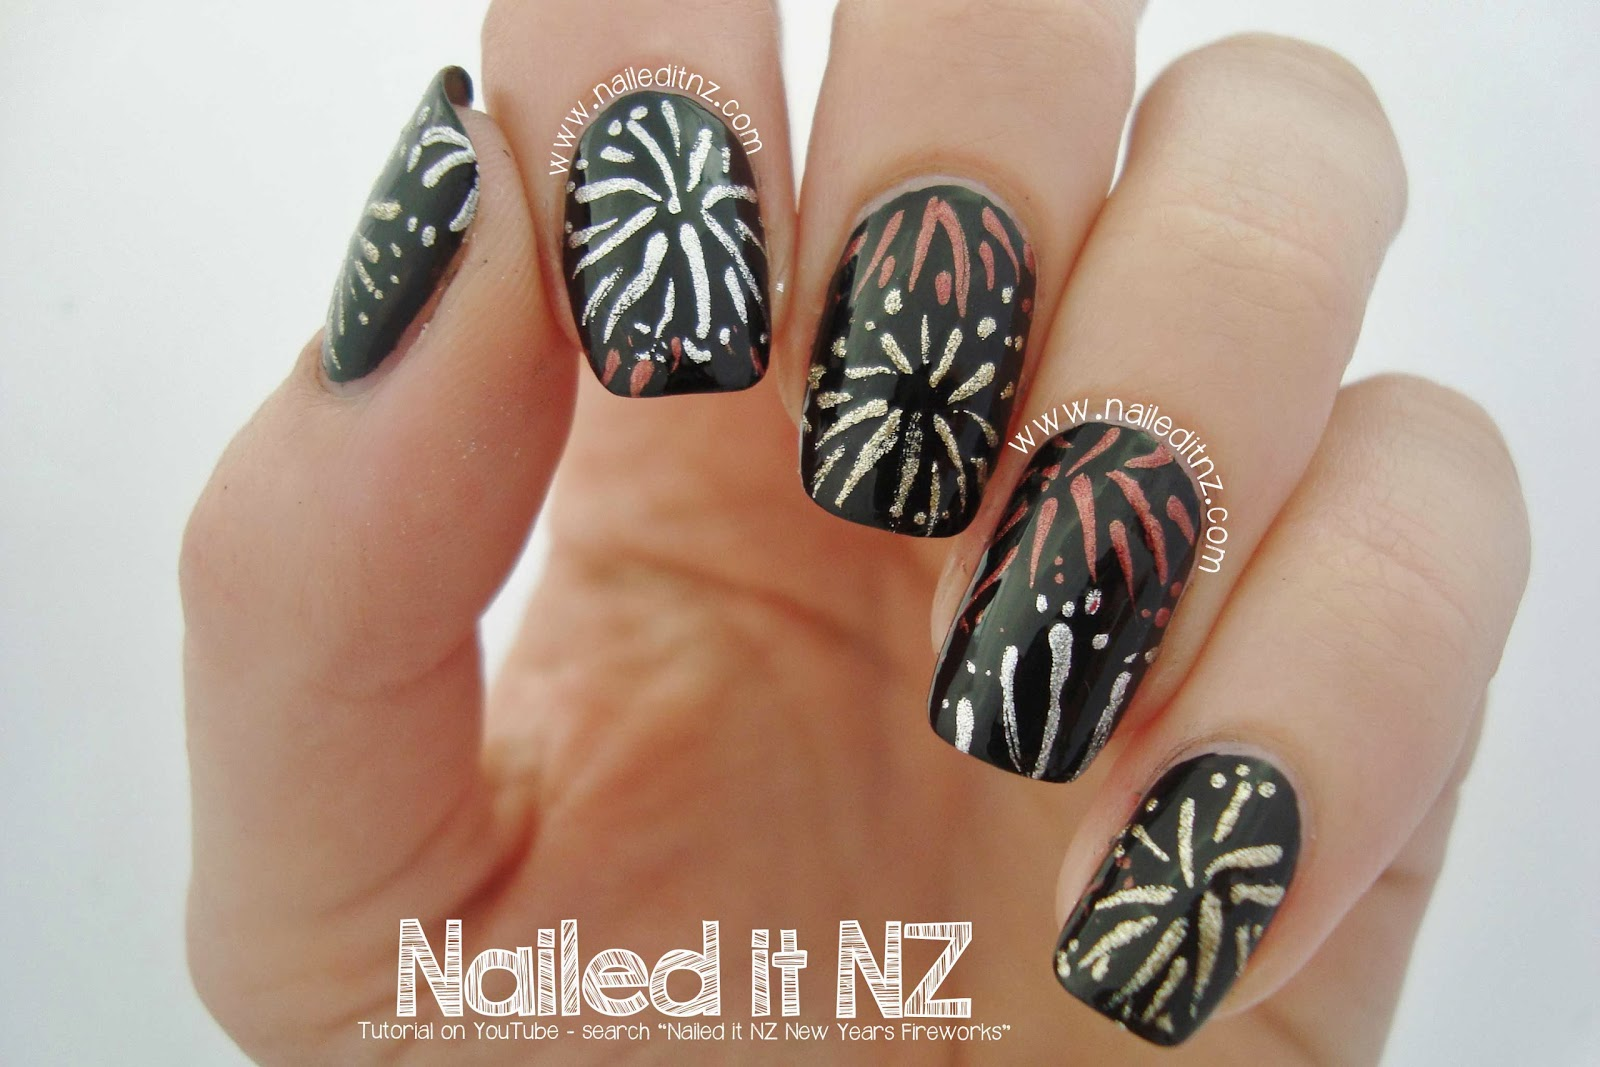 New Yearsfireworks Nail Art Tutorial 12 Days Of Christmas Nail